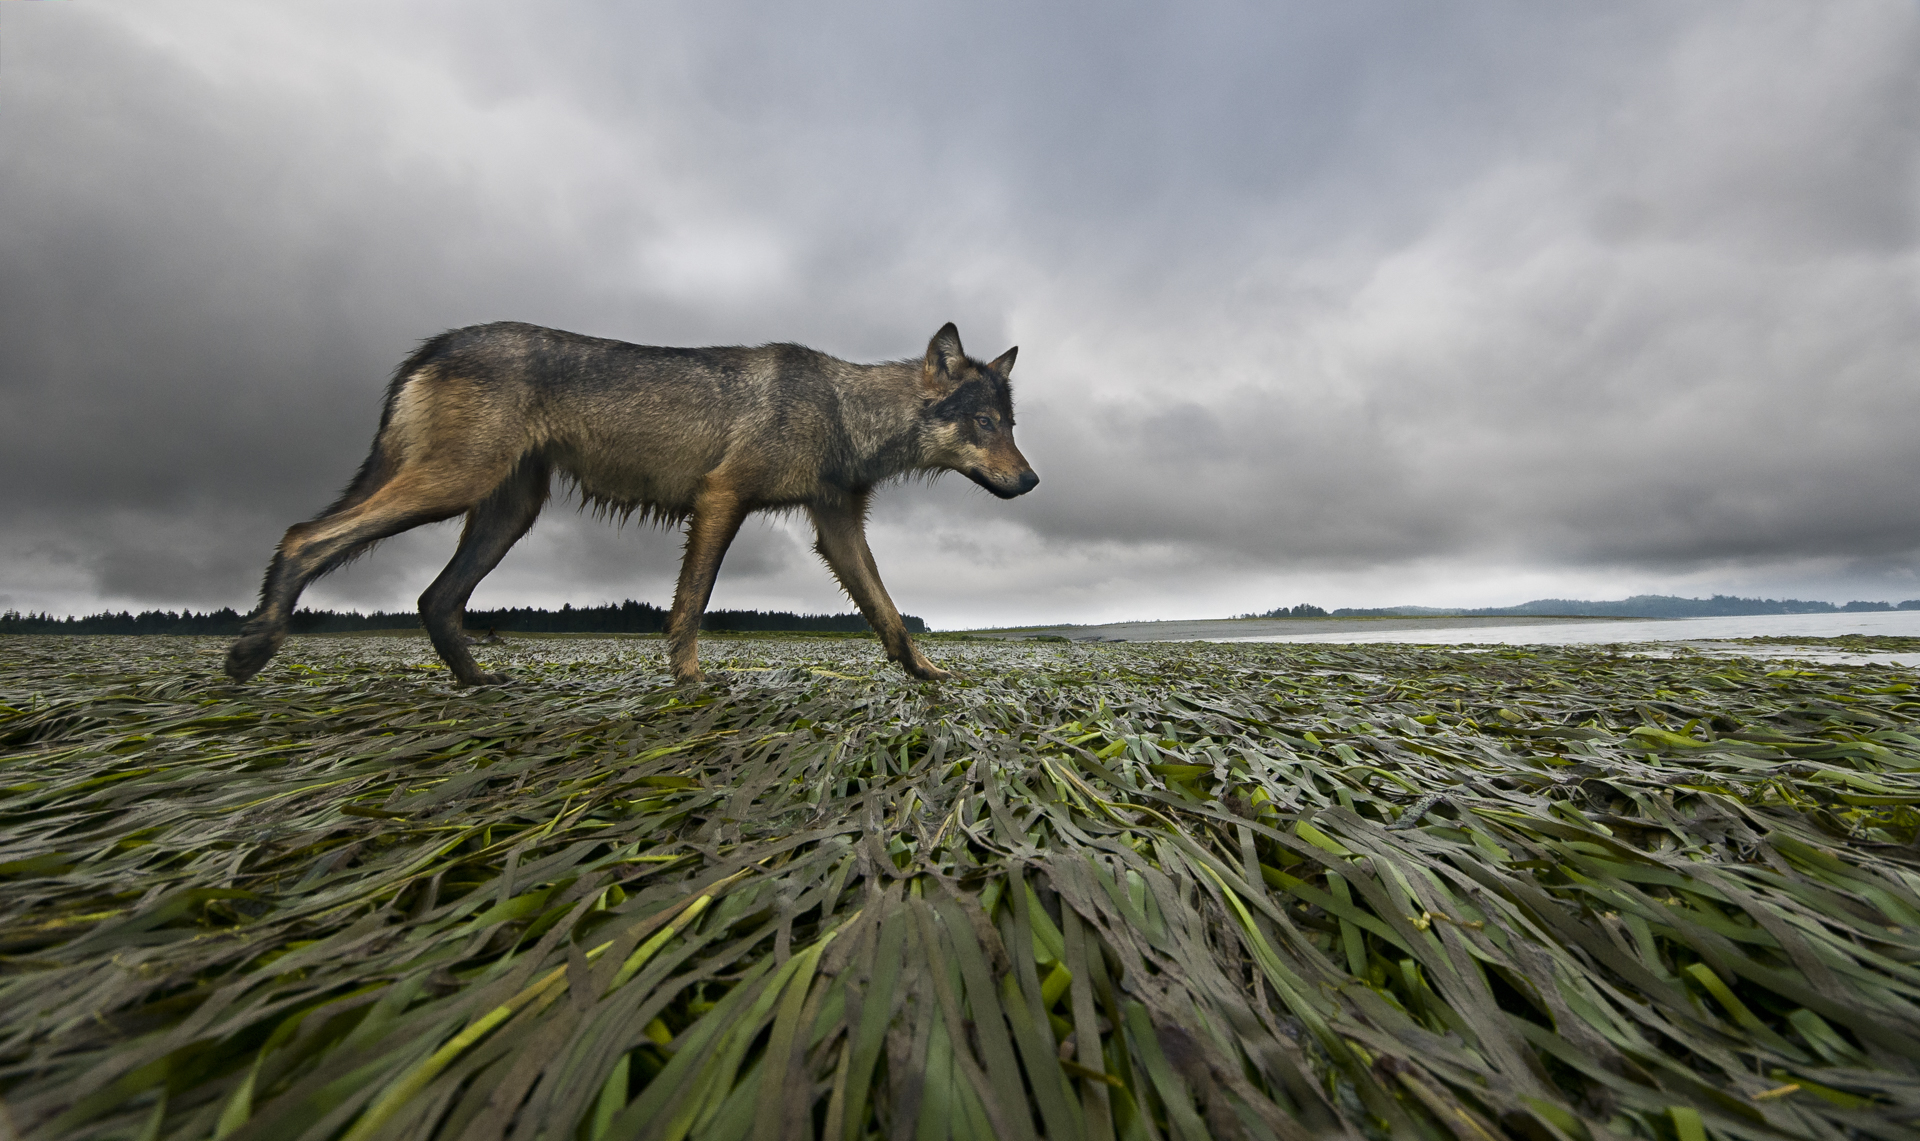 A female coastal grey wolf surveys her mudflat territory at low tide